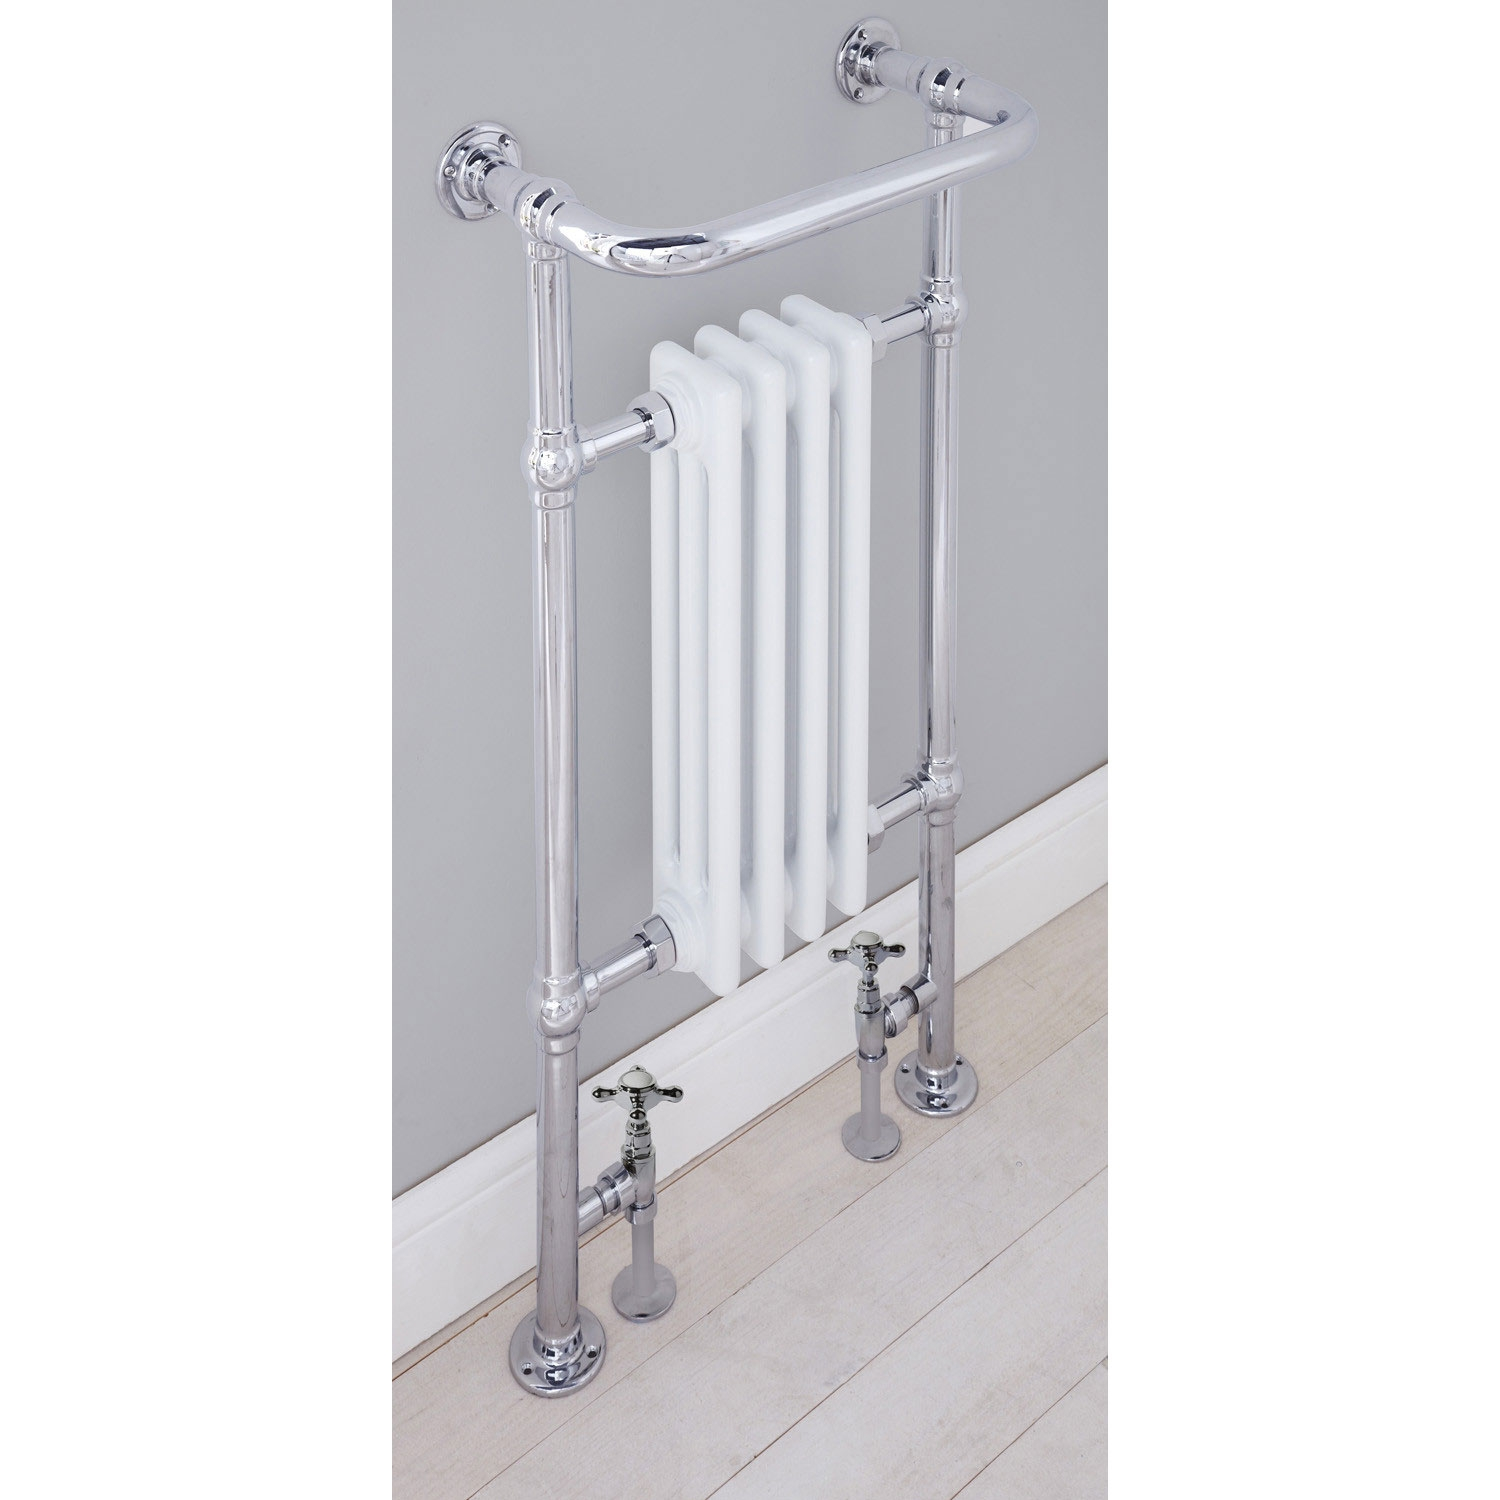 Verona Radley Traditional Heated Towel Rail 963mm H x 493mm W Chrome